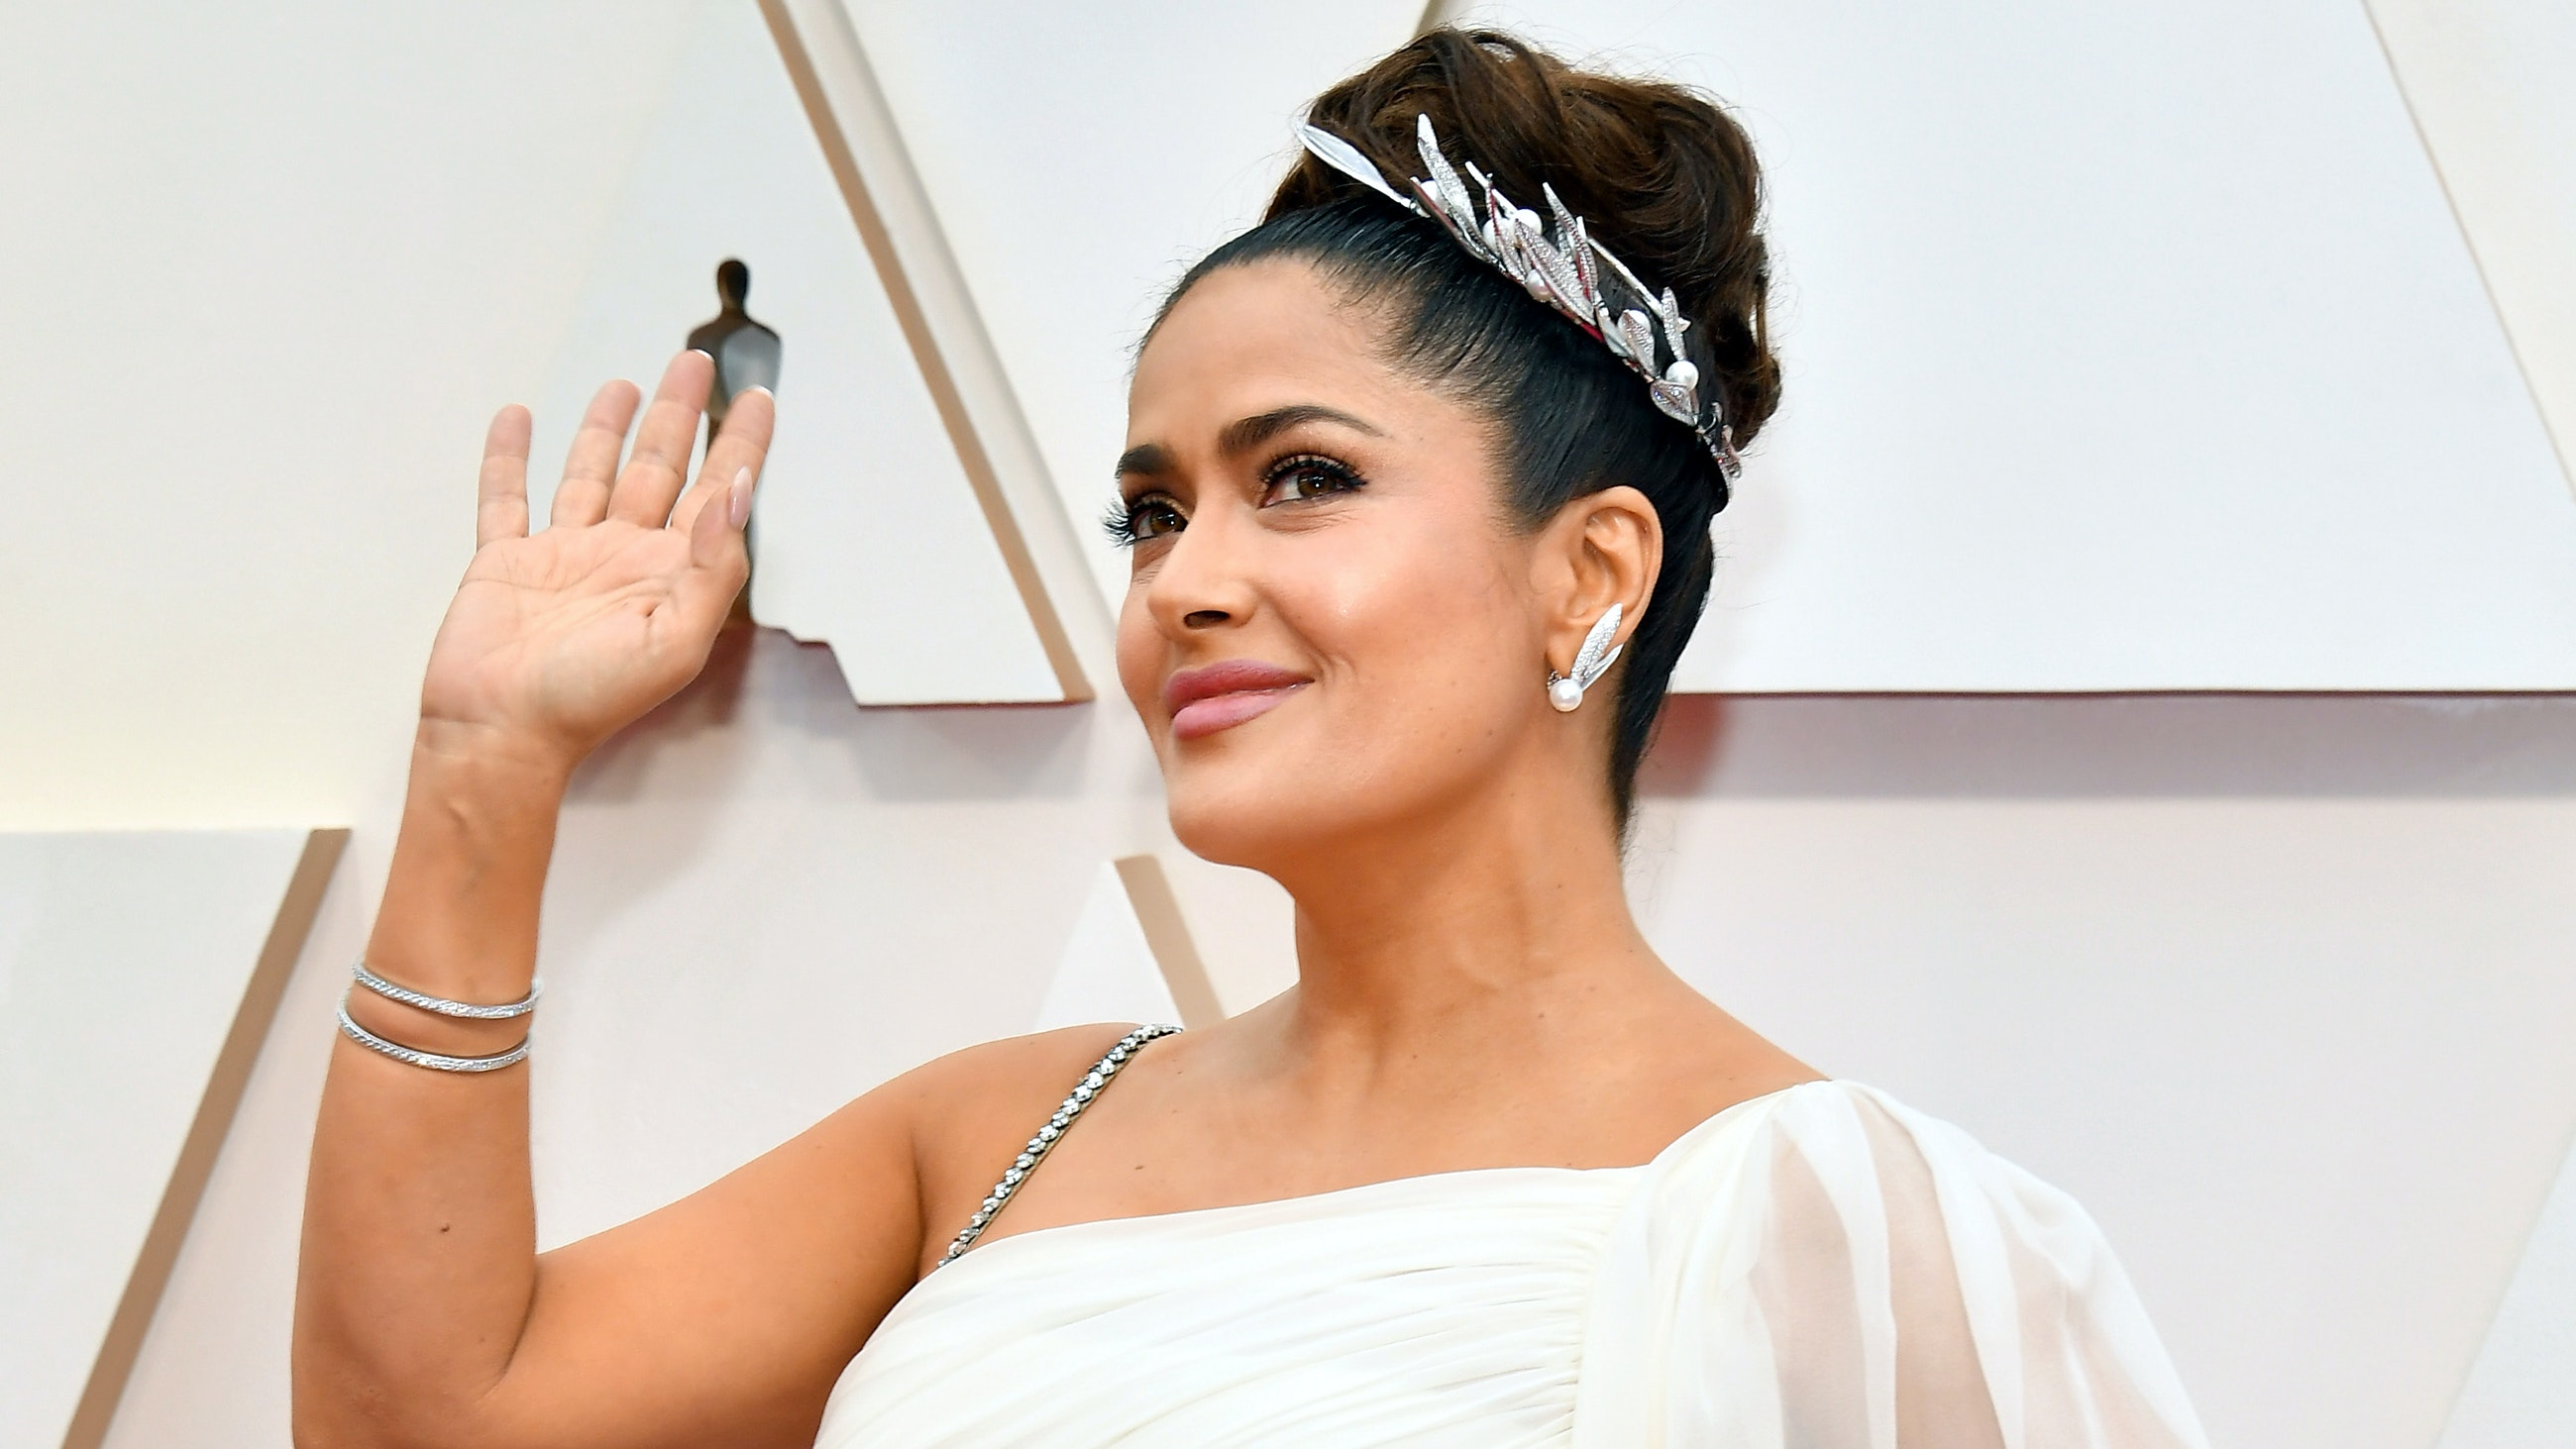 """Salma Hayek's """"Sexy With a Twist"""" Oscars Look Is Our Valentine's Day Date Night Inspiration"""